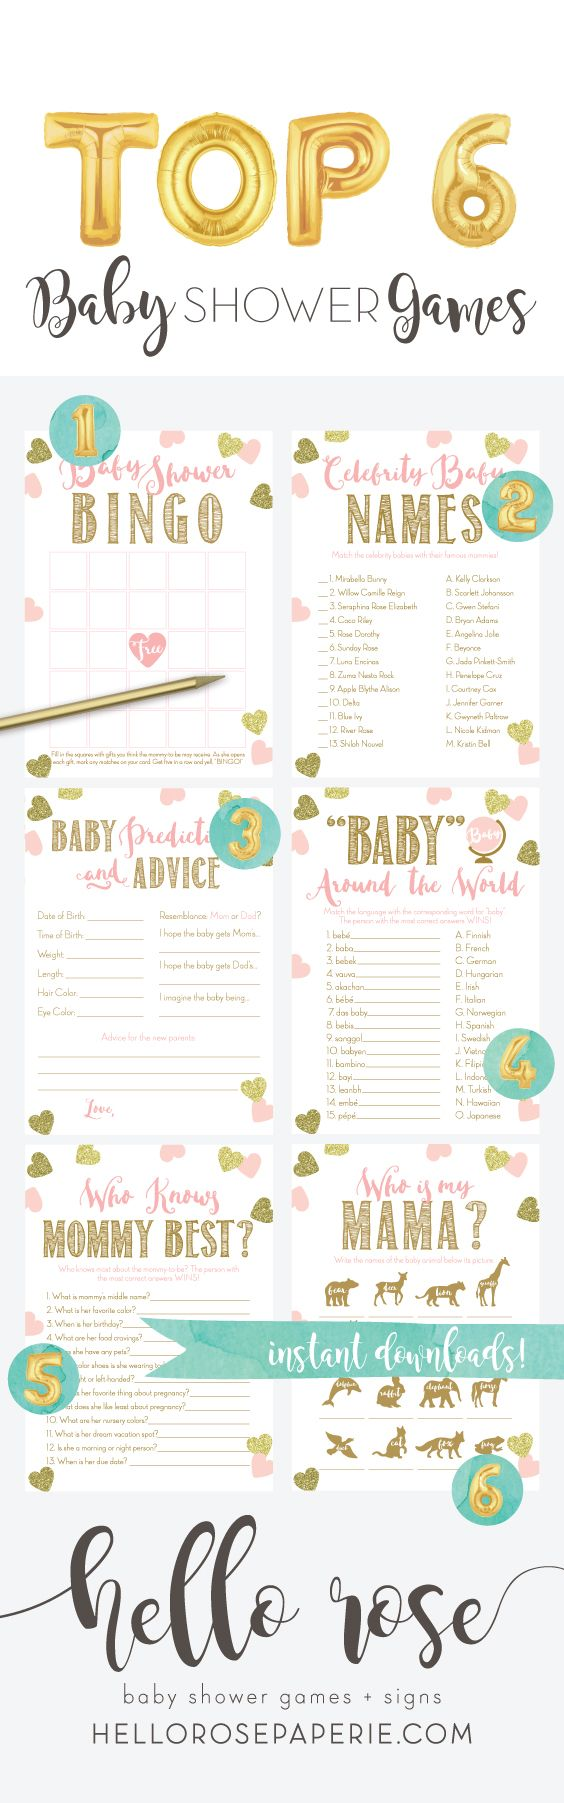 Top 6 Baby Shower games you NEED at your baby shower! They are printable, INSTANT downloads. Just print, cut and play... Easy peasy! Choose any 6 for $13. Hello Rose Paperie